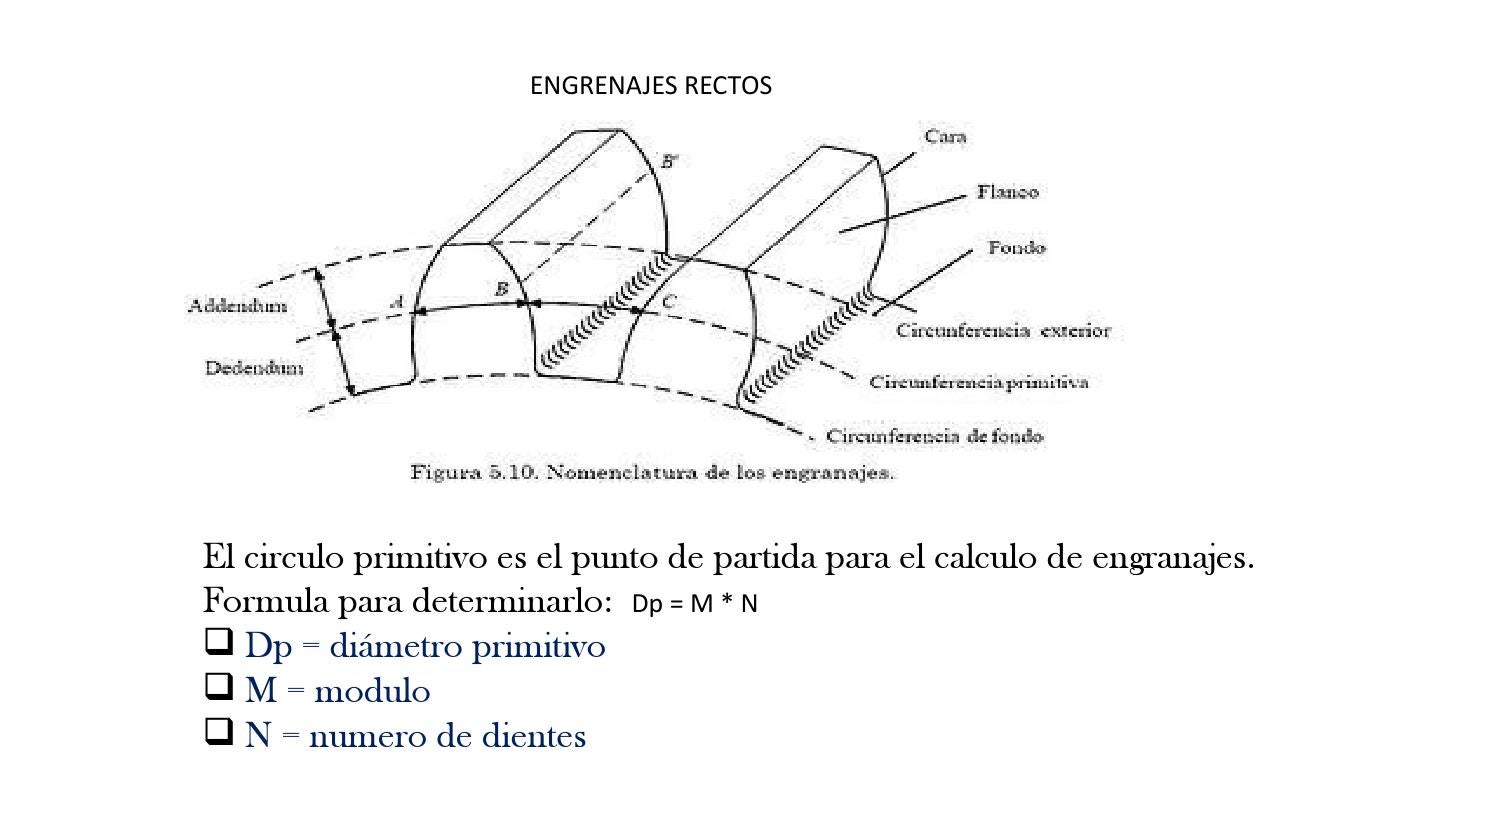 Nomenclatura y calculo de engranes rectos by juan issuu for Numero de dientes